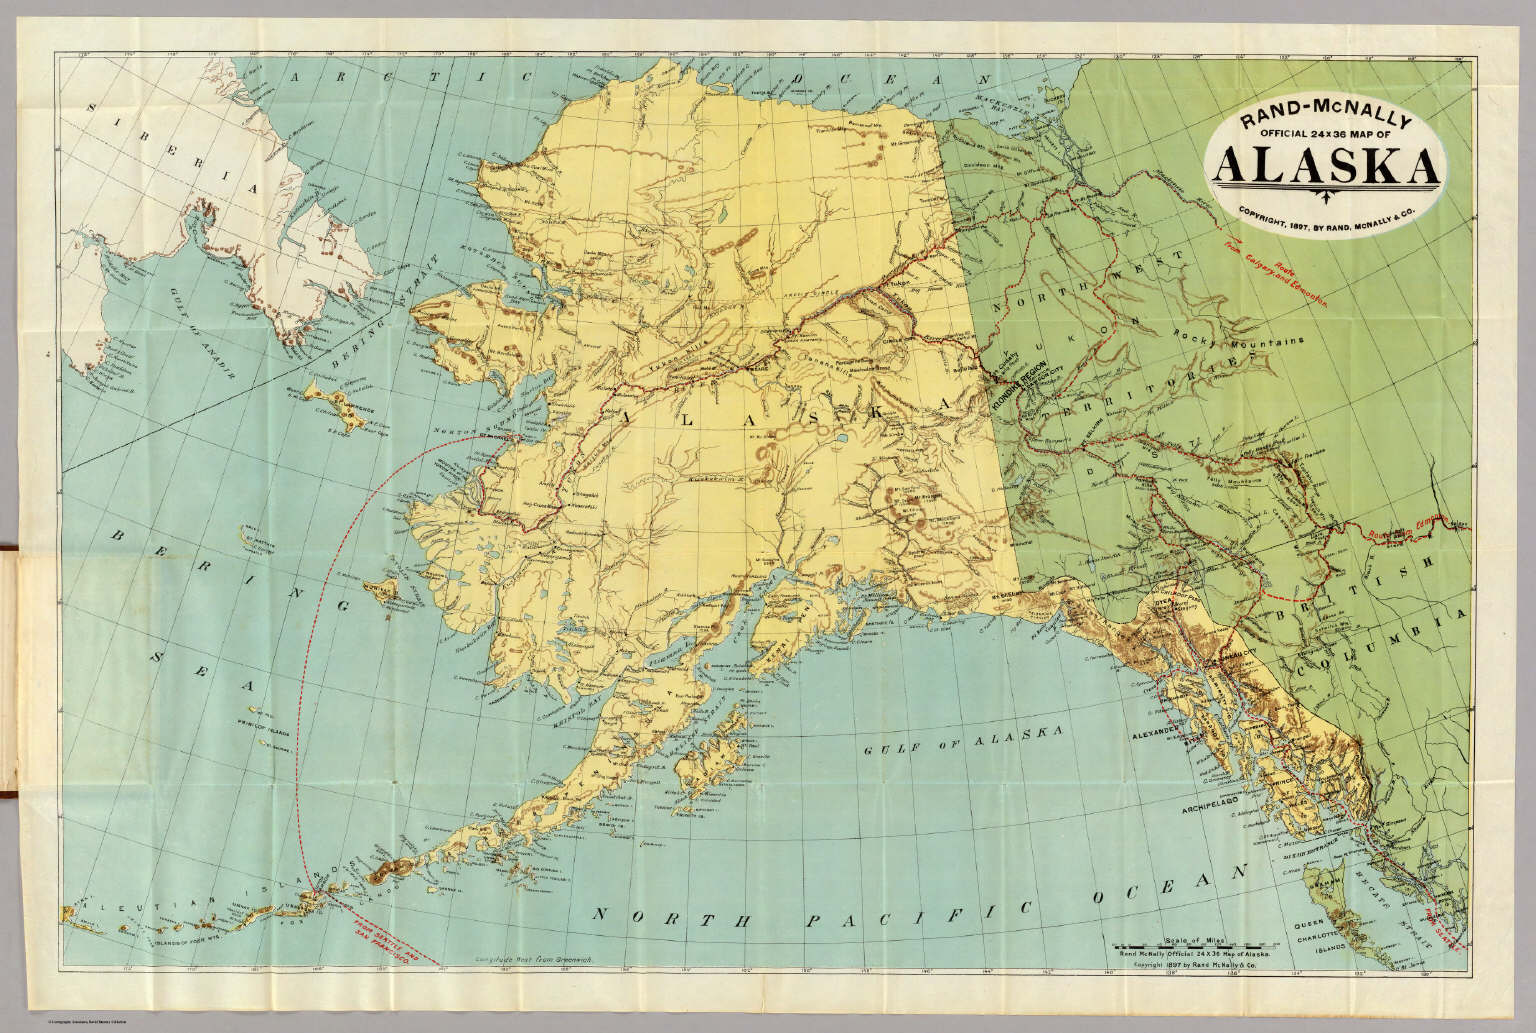 RandMcNally Official X Map Of Alaska Rand McNally And - Rand mcnally online maps